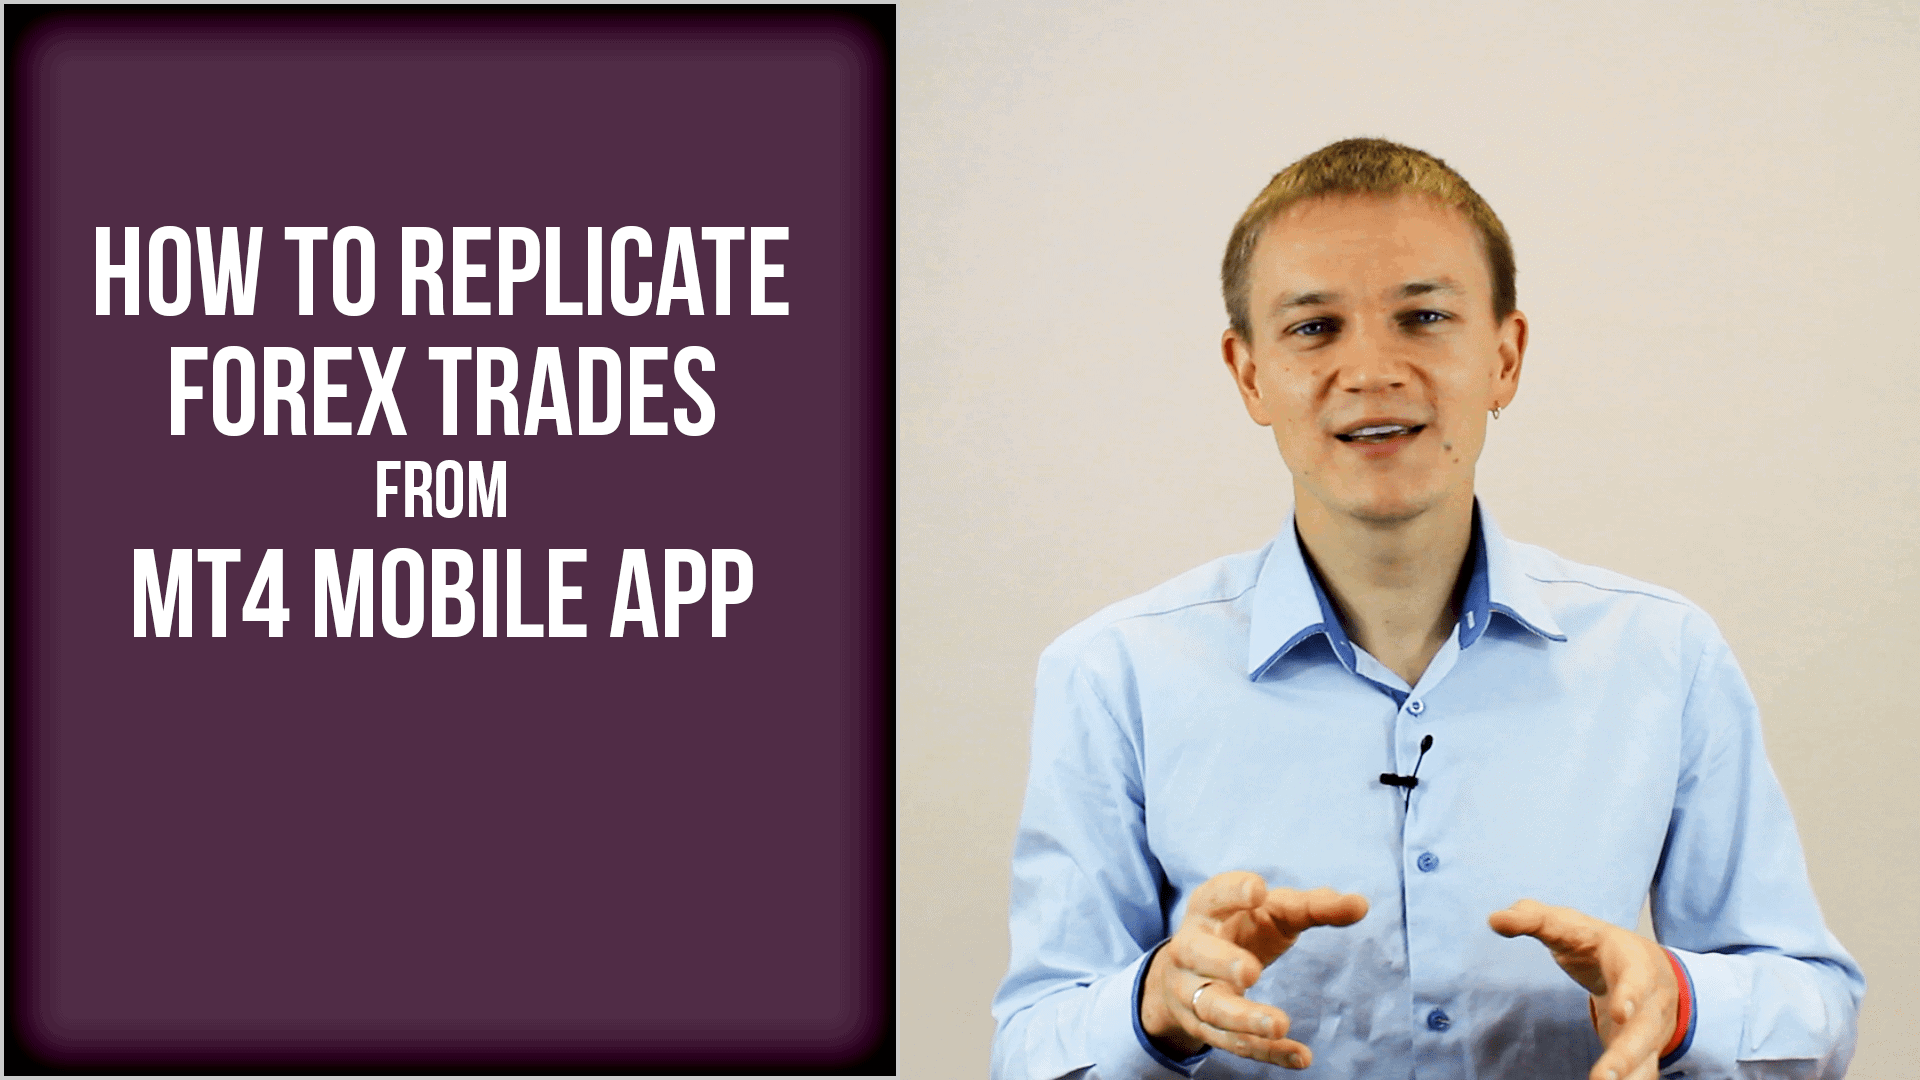 How to Copy Forex Trades from MT4 Mobile to other MT4 Accounts